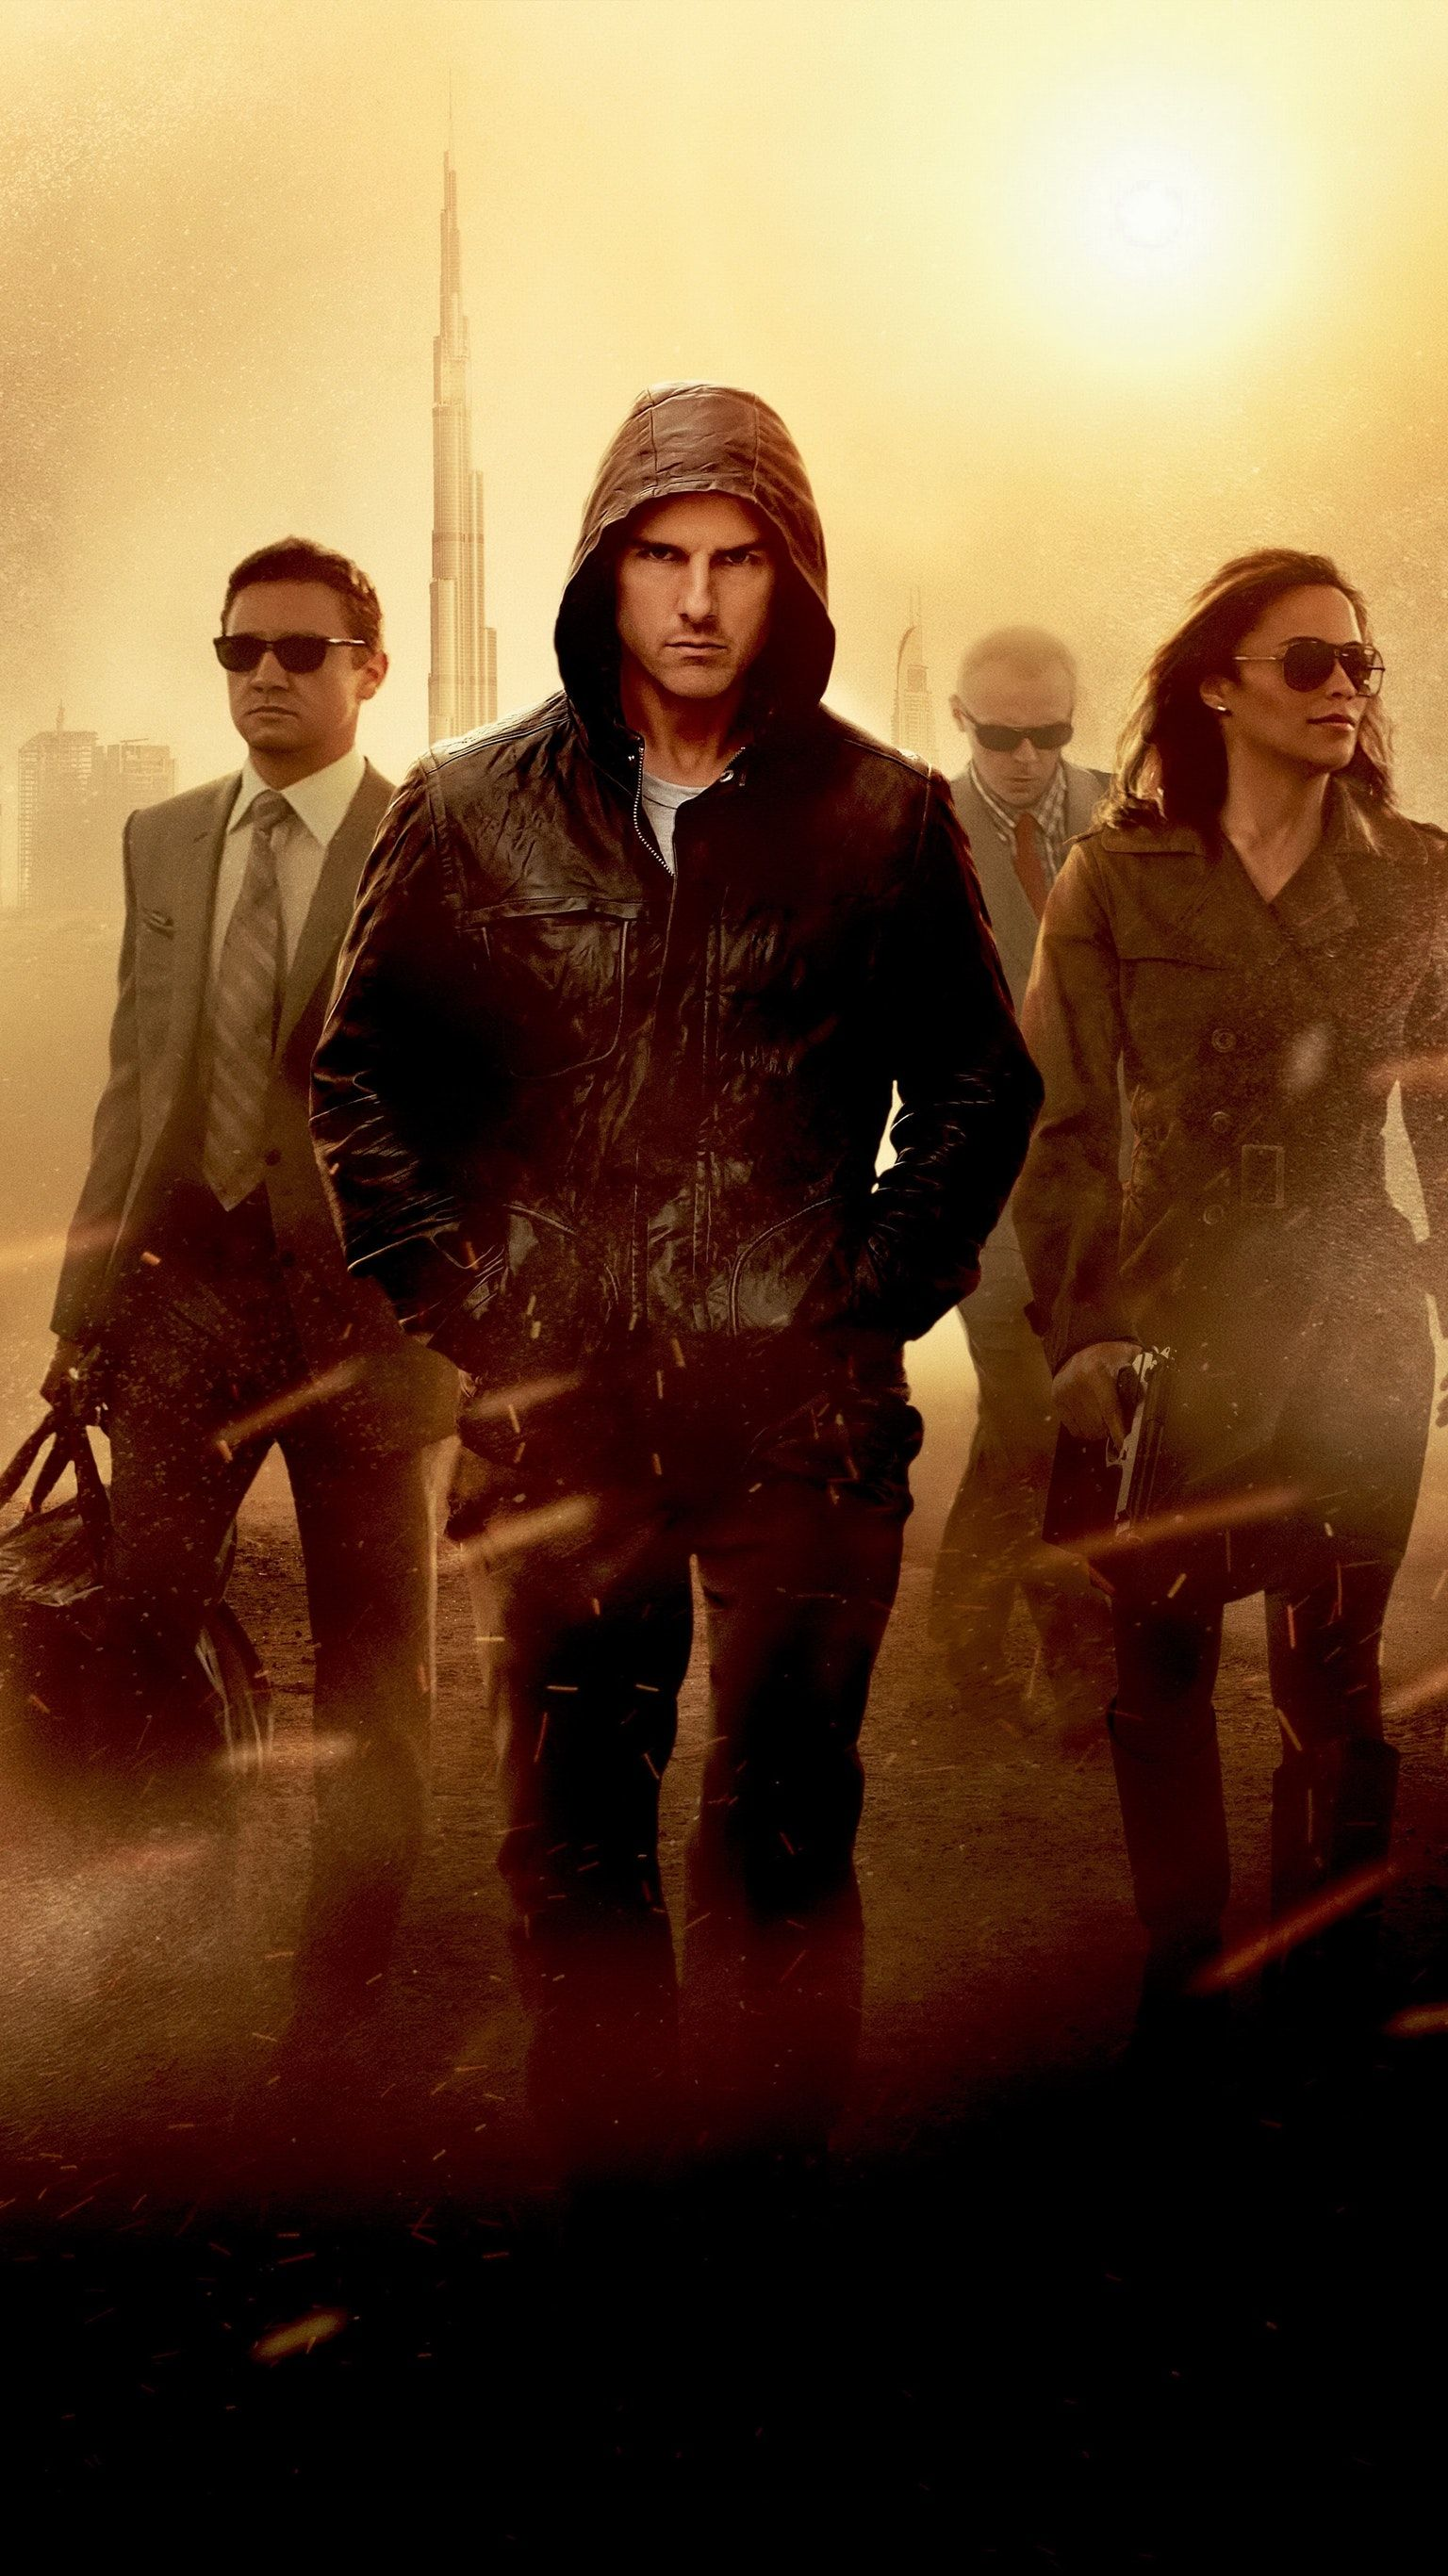 Mission Impossible Ghost Protocol 2011 Phone Wallpaper Action Winter Hat Wh 94 Hd Movies Online Full Download Streaming Movie